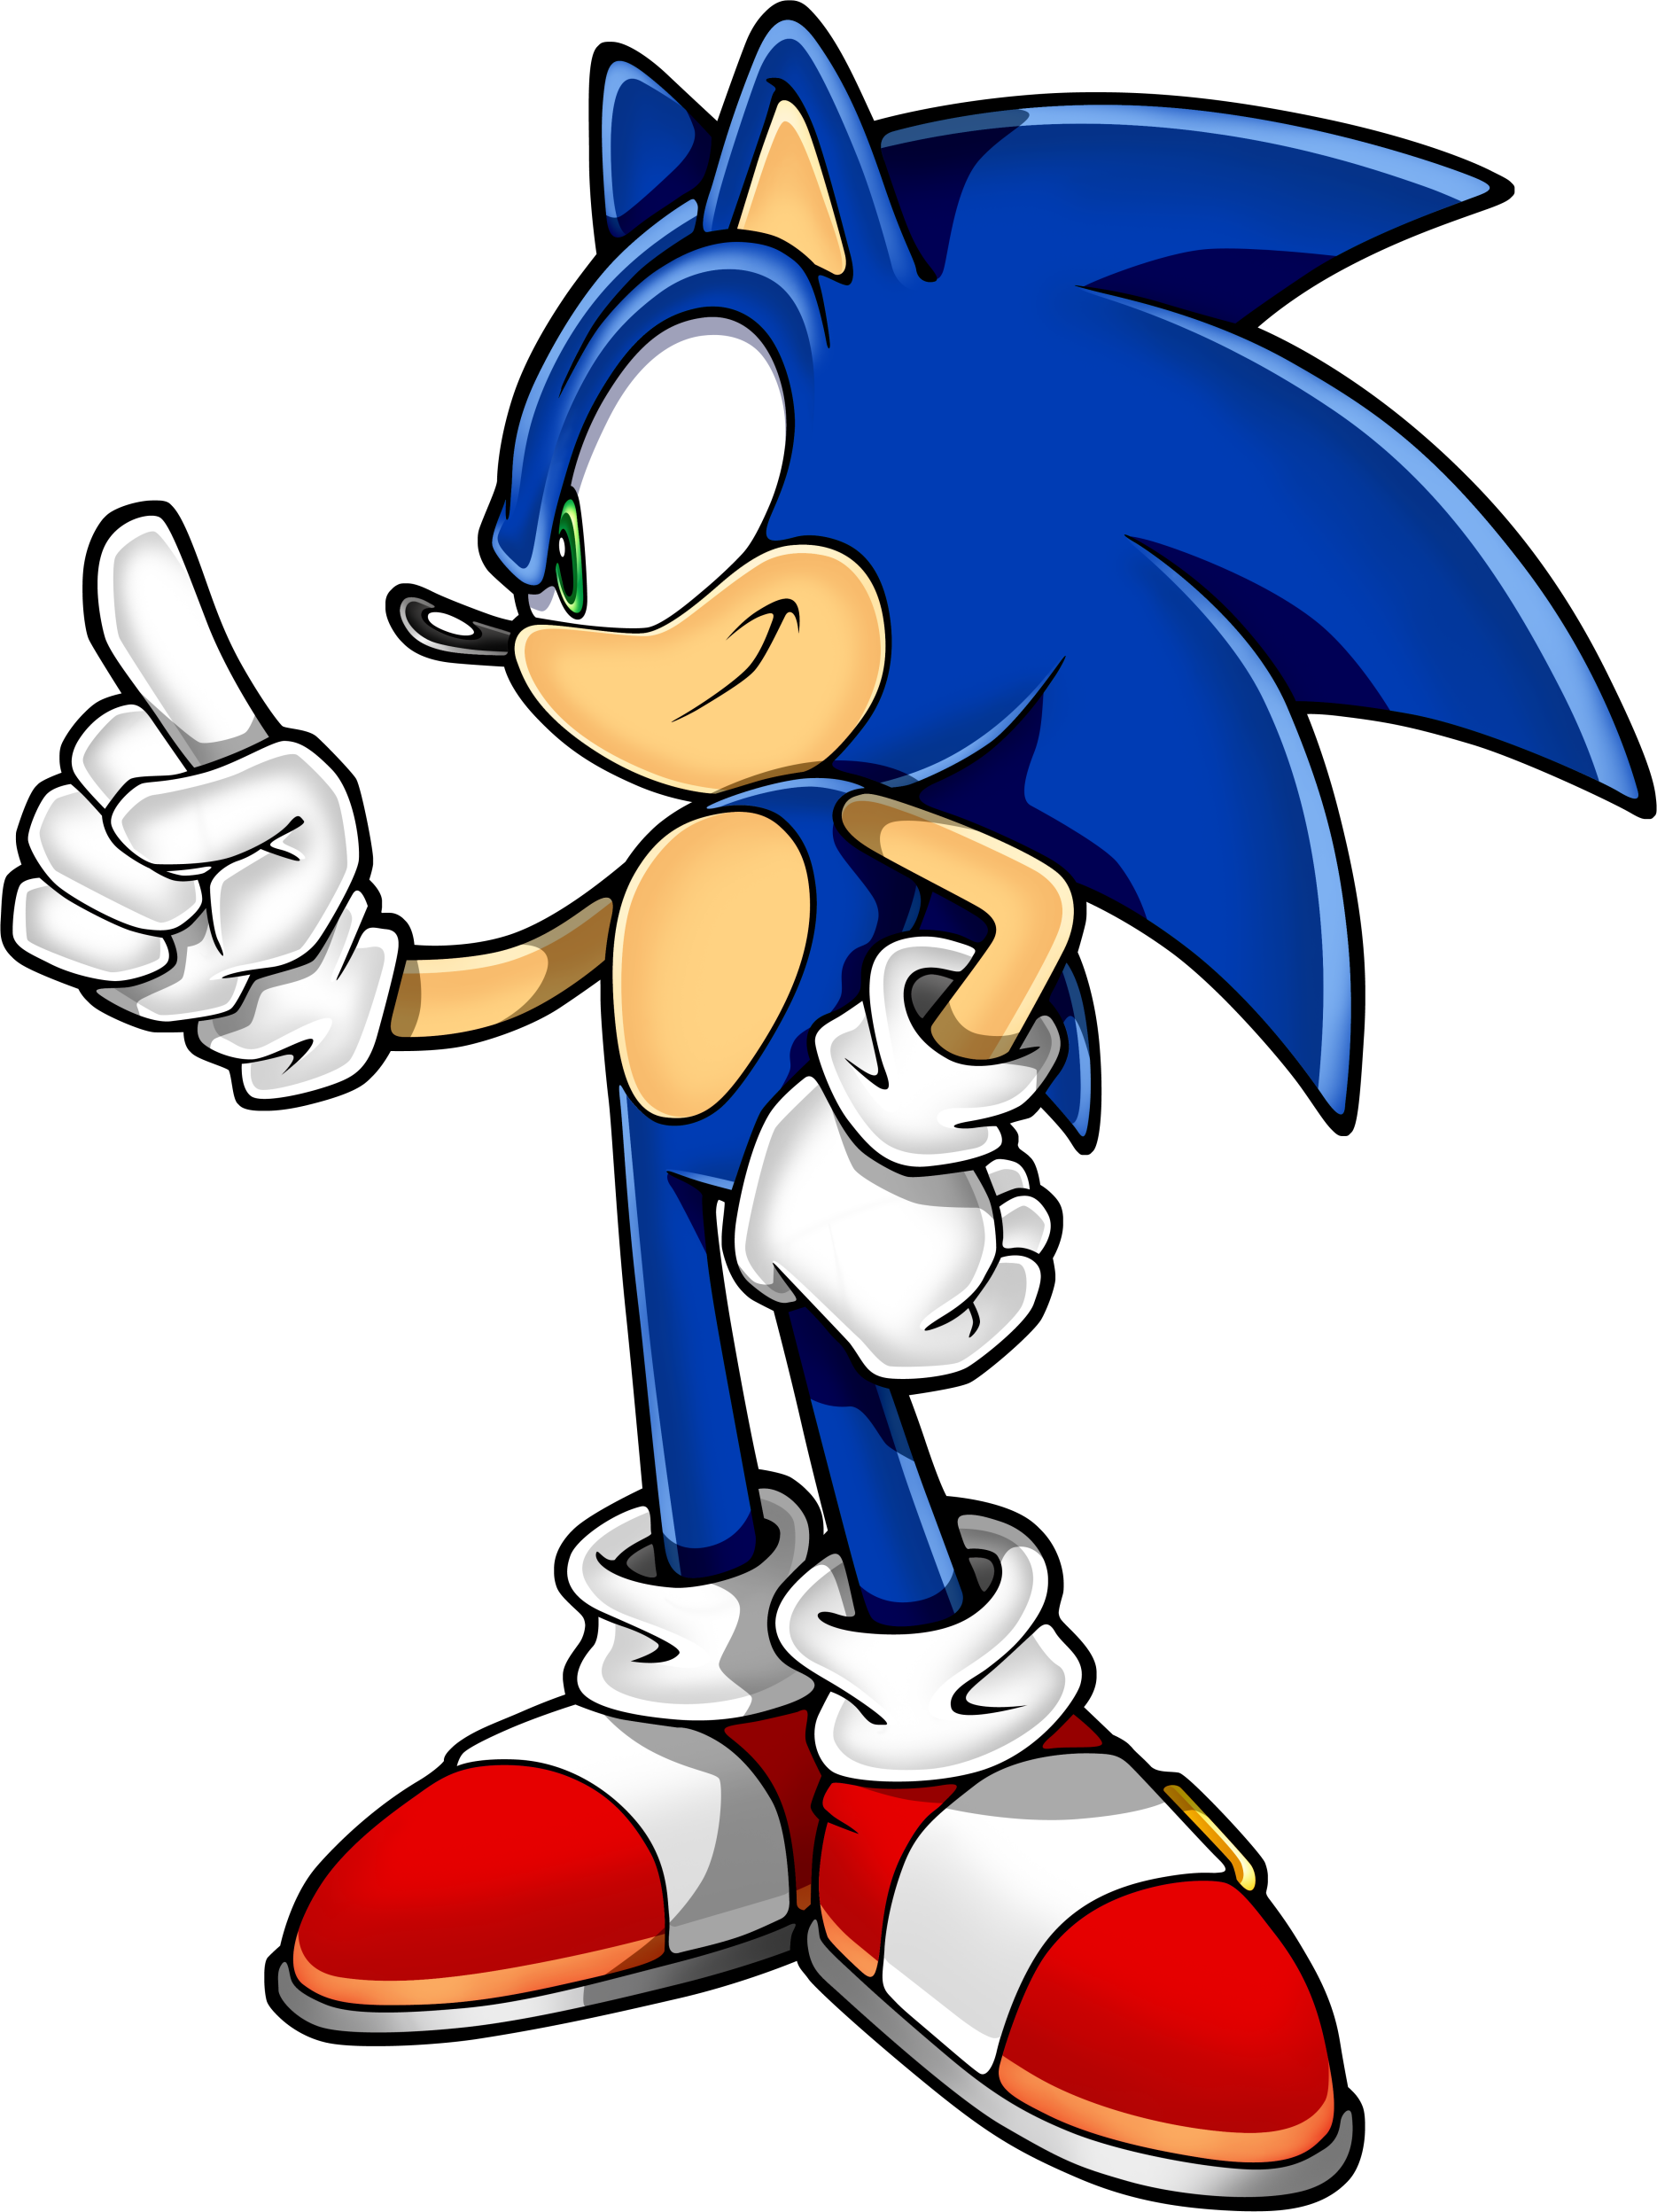 http://vignette4.wikia.nocookie.net/sonic/images/2/2e/Sonic_Art_Assets_DVD_-_Sonic_The_Hedgehog_-_13.png